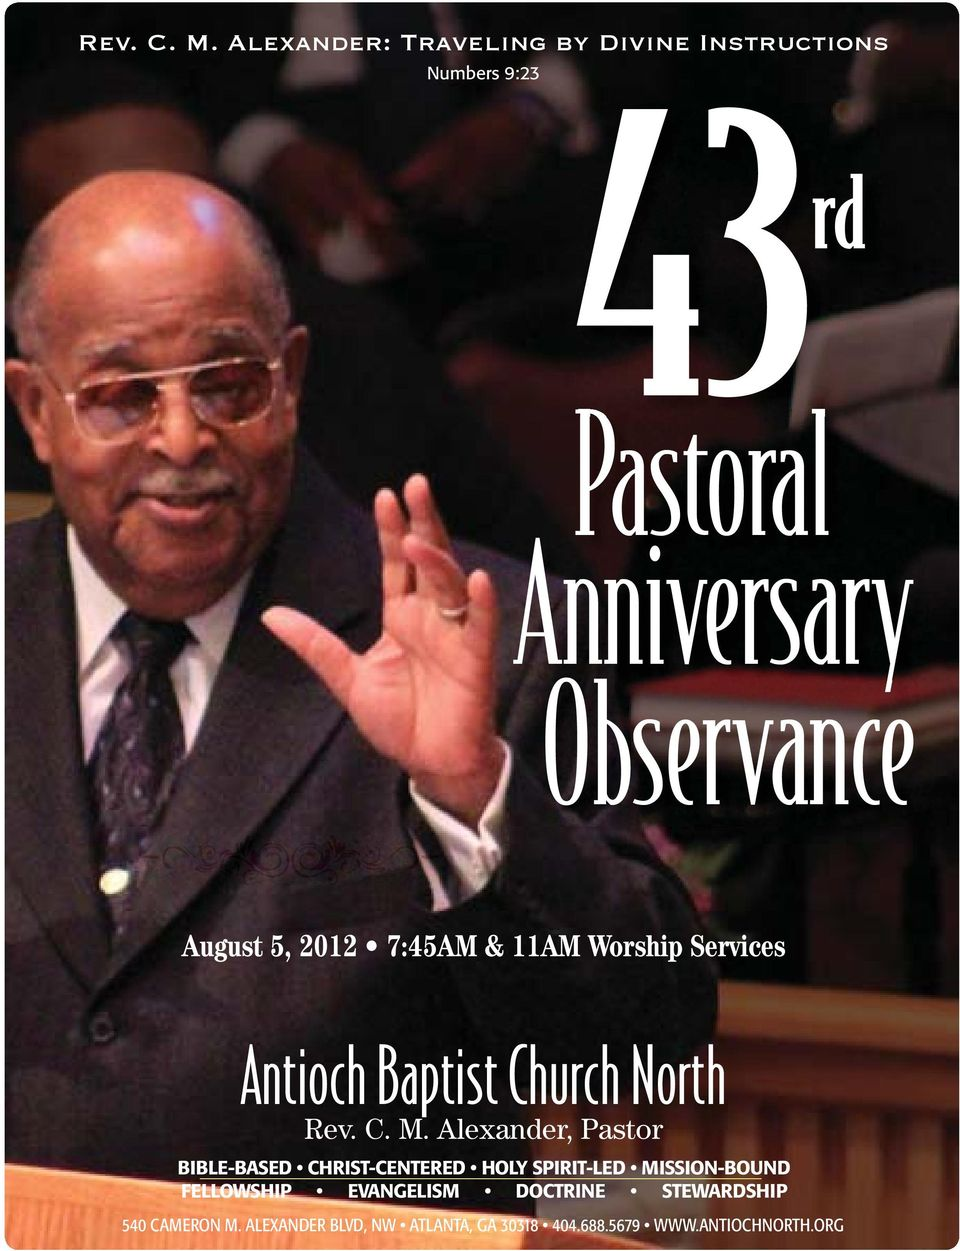 August 5, 2012 7:45AM & 11AM Worship Services Antioch Baptist Church North  Alexander, Pastor